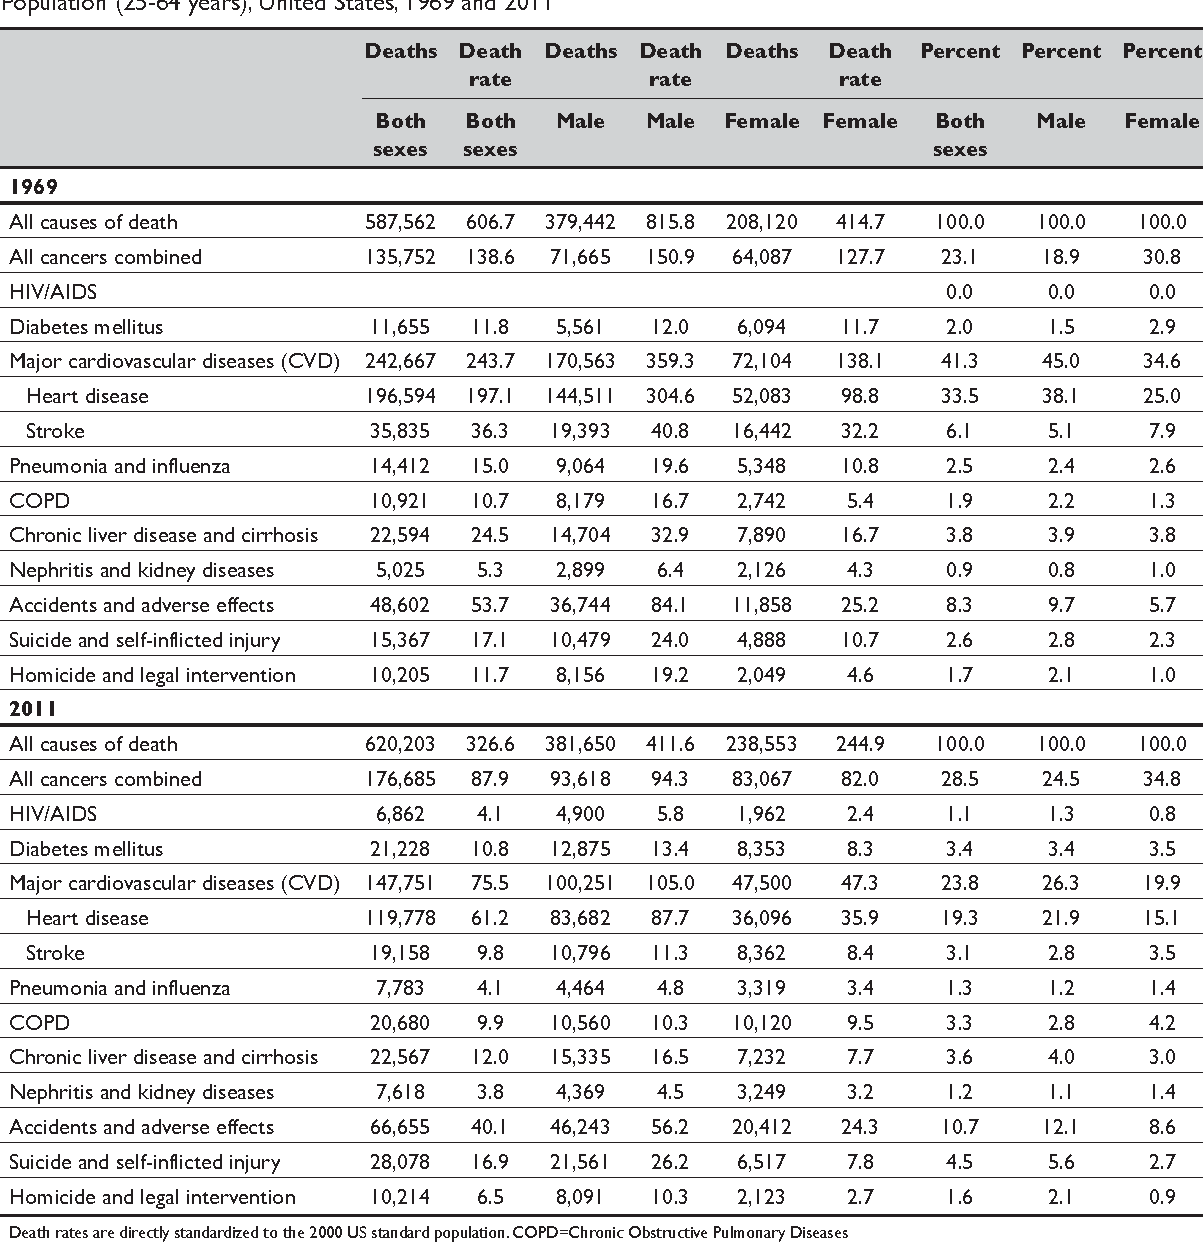 Table 1. Number of Deaths and Age-Adjusted Death Rates from Leading Causes of Death Among the Working-Age Population (25-64 years), United States, 1969 and 2011